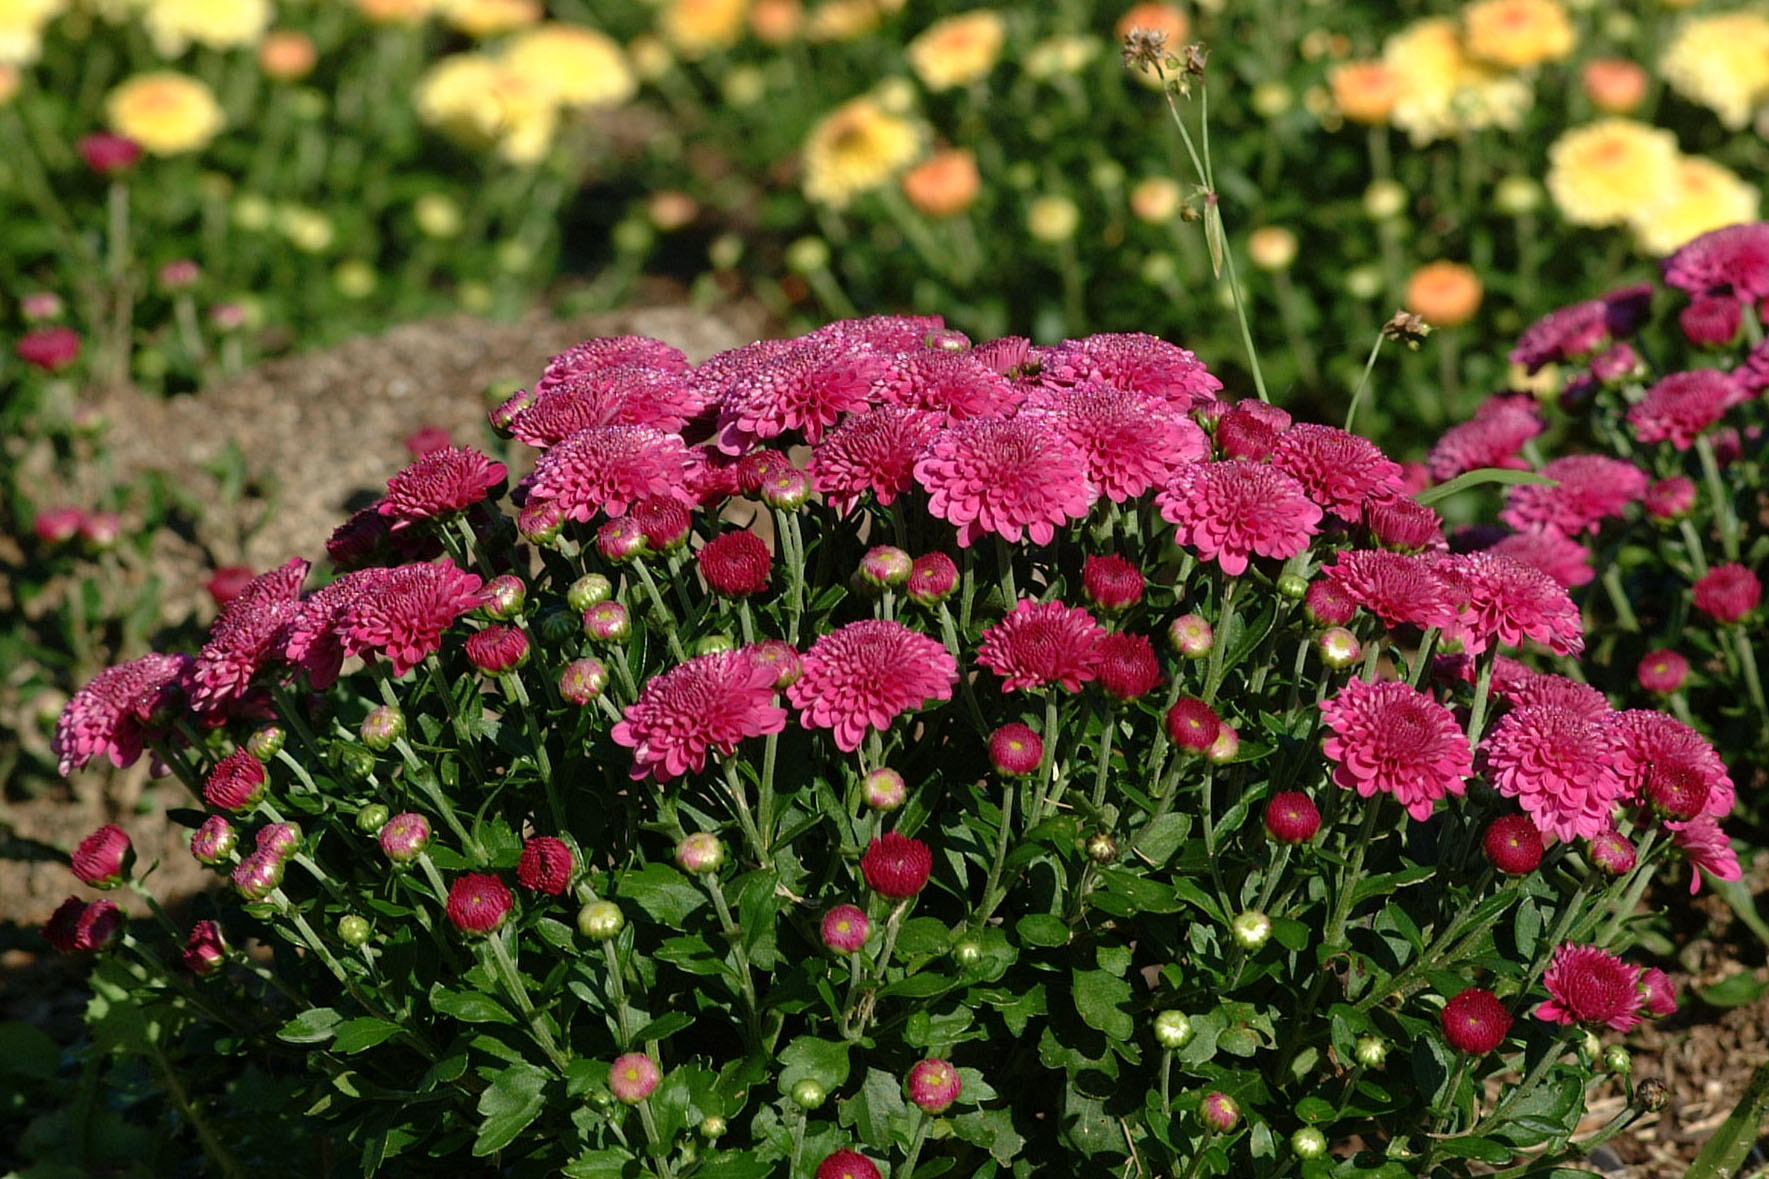 Herbaceous perennials offer easy care and beauty to landscape